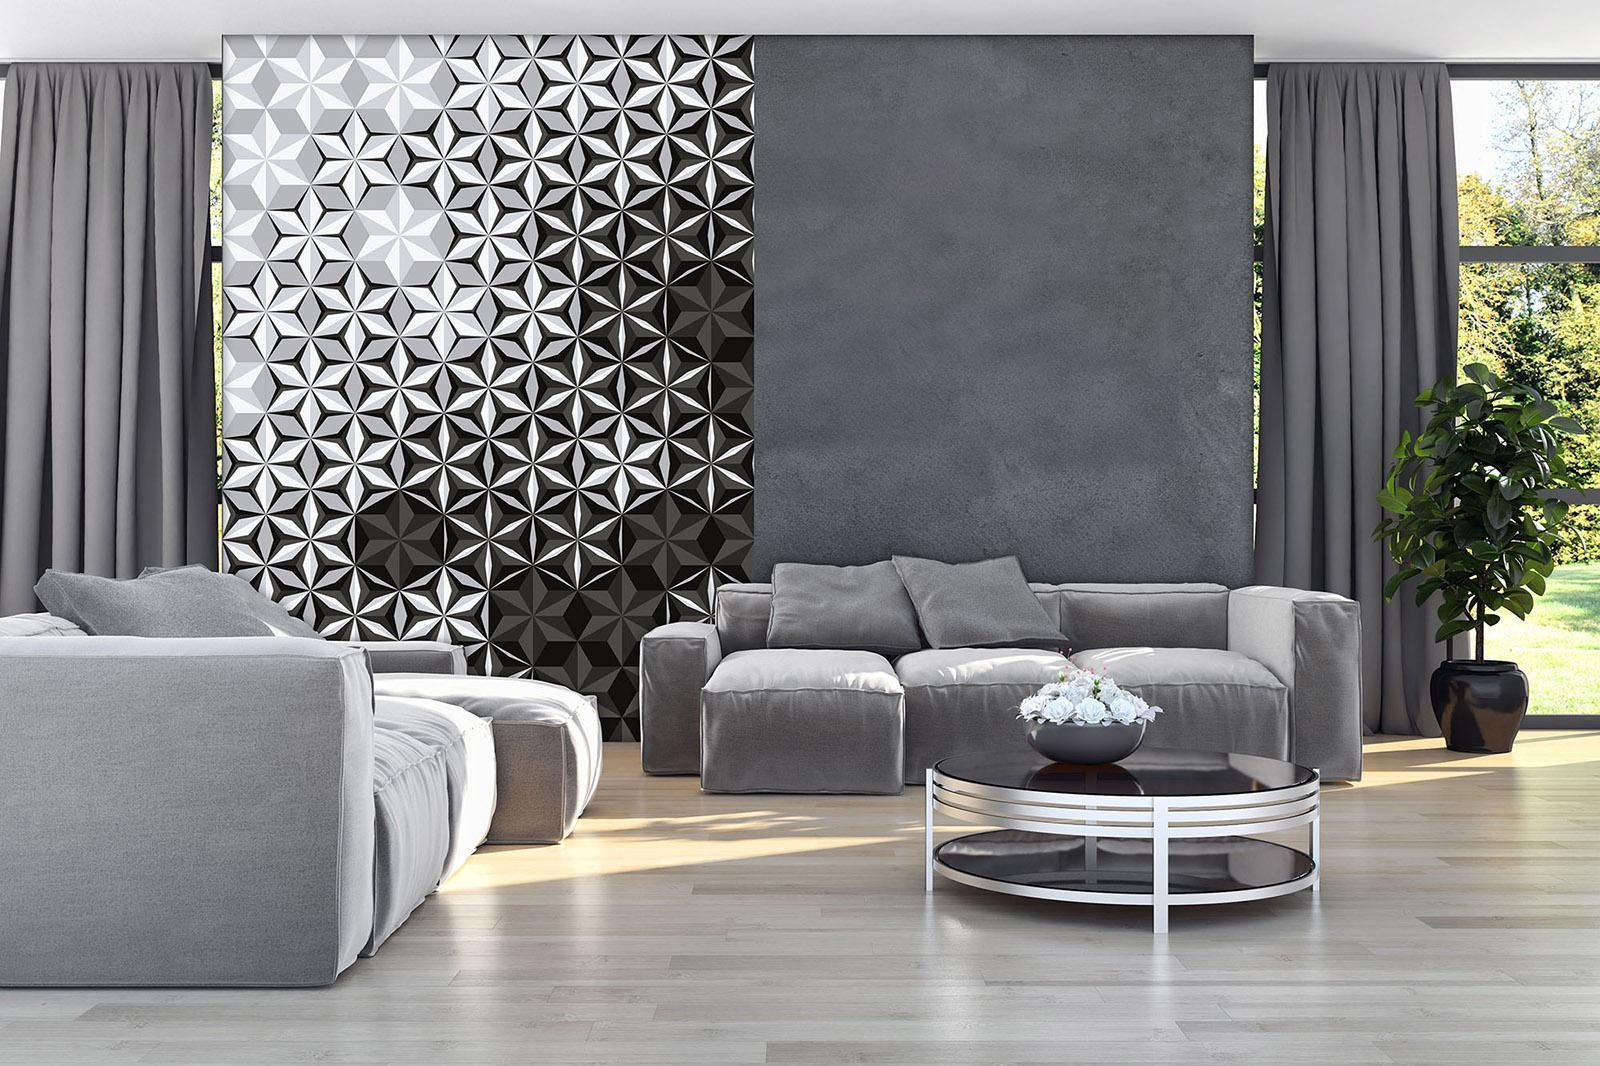 Gray concrete imitating wallpaper